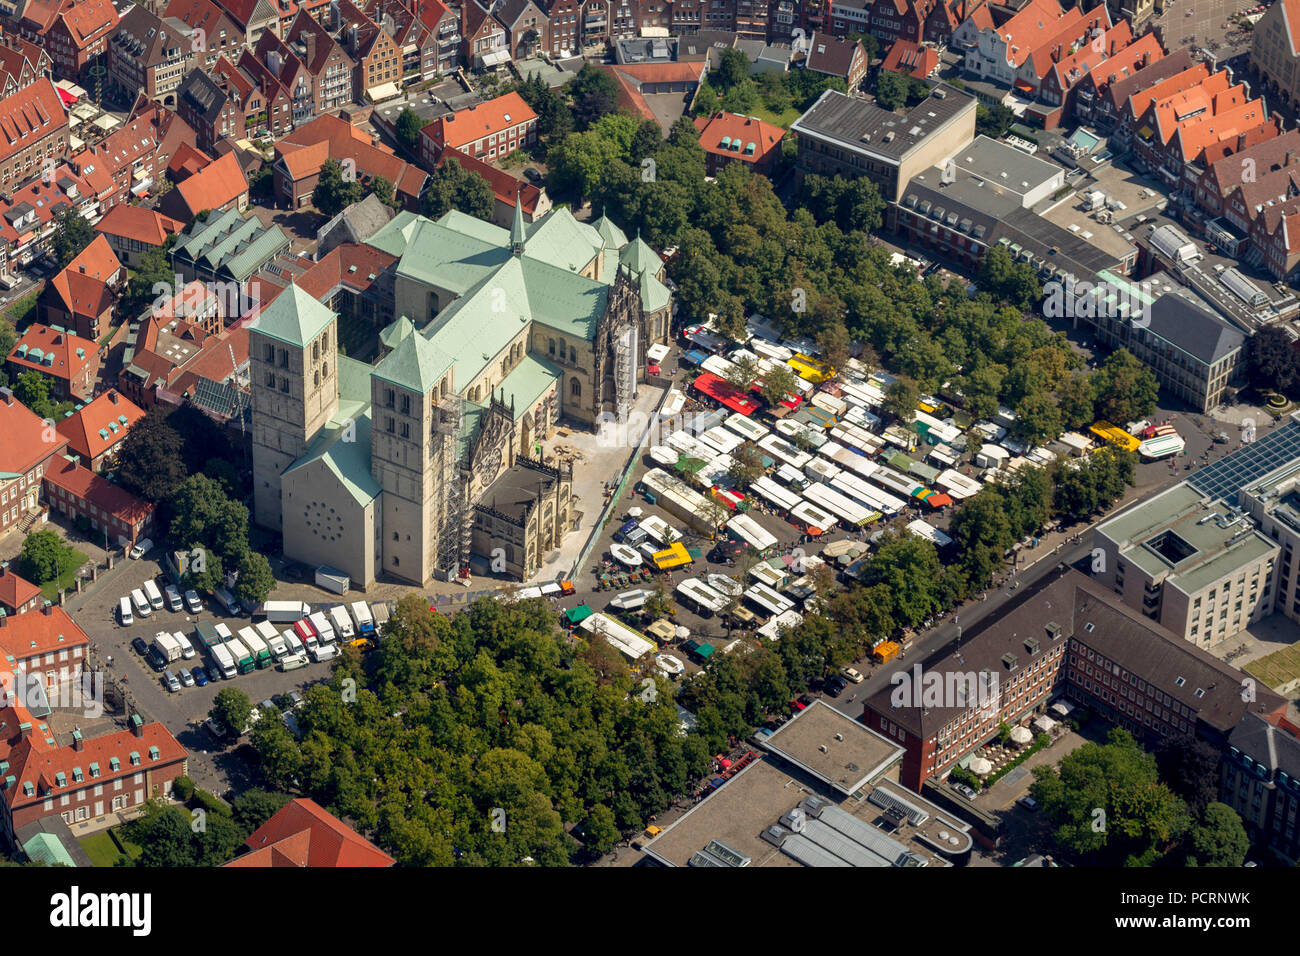 Aerial view, Prinzipalmarkt, historical Kaufmannsstraße gable houses continuous arcades, Paulus Cathedral in Münster, with market, market square, Münster, Münsterland, North Rhine-Westphalia, Germany, Europe - Stock Image